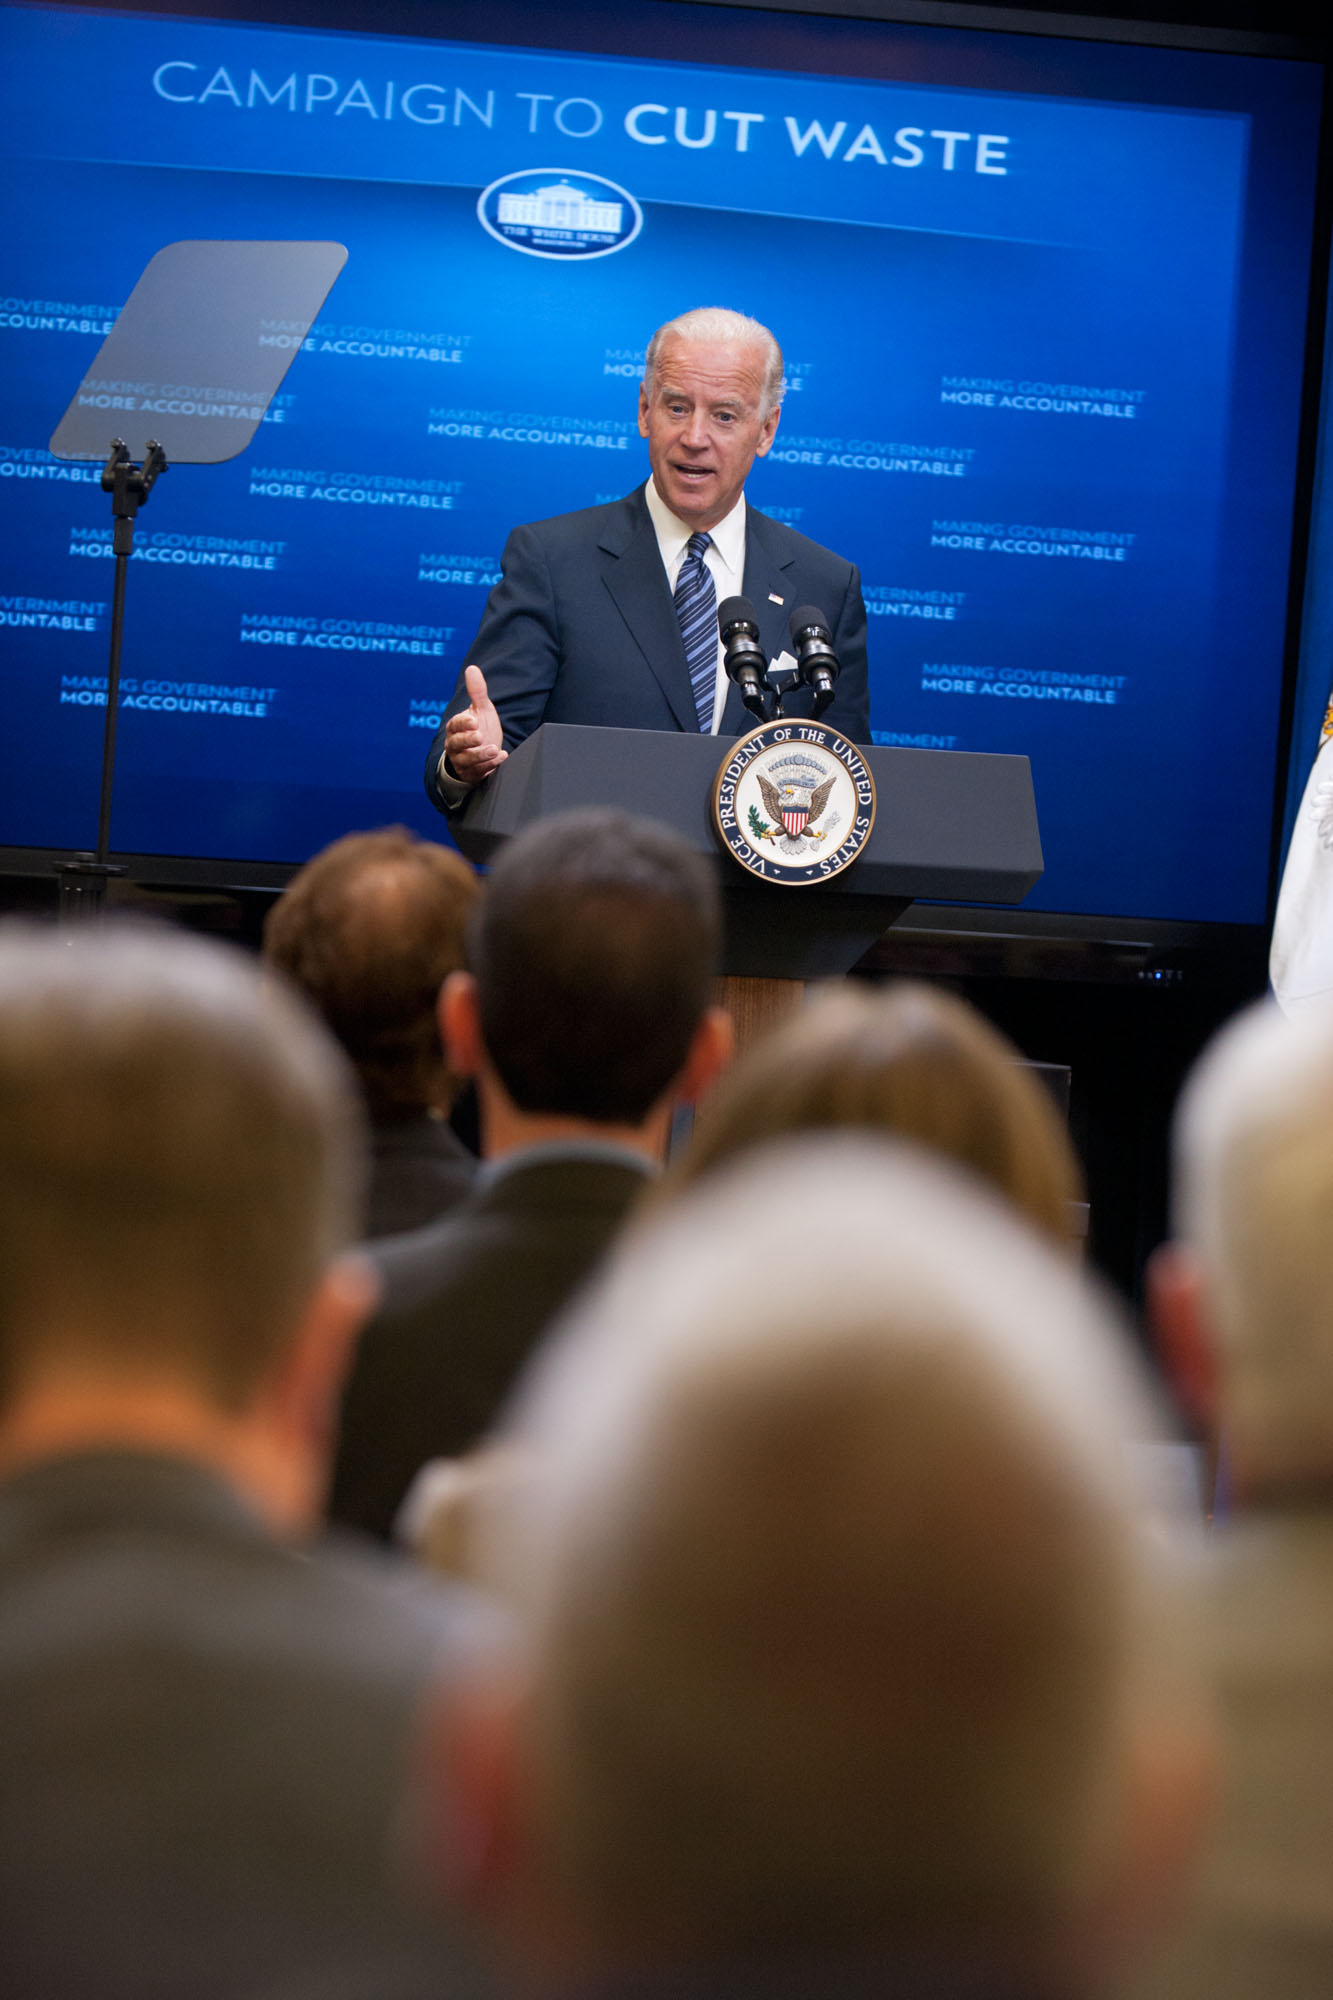 Vice President Biden Announces the Campaign to Cut Waste